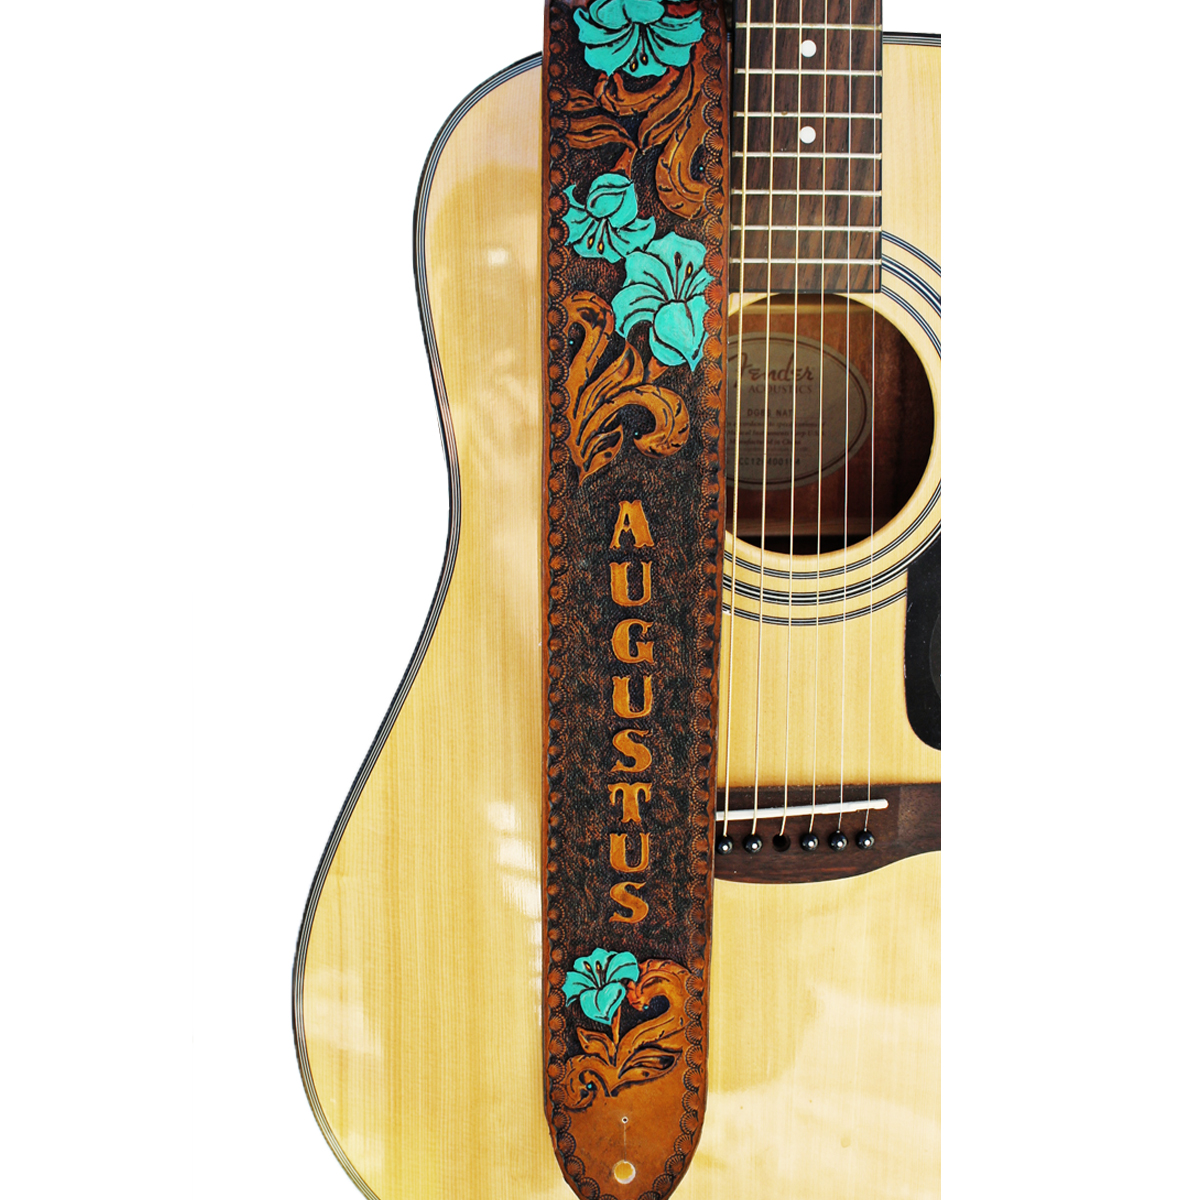 personalized-lily-flower-guitar-strap-the-leather-smithy